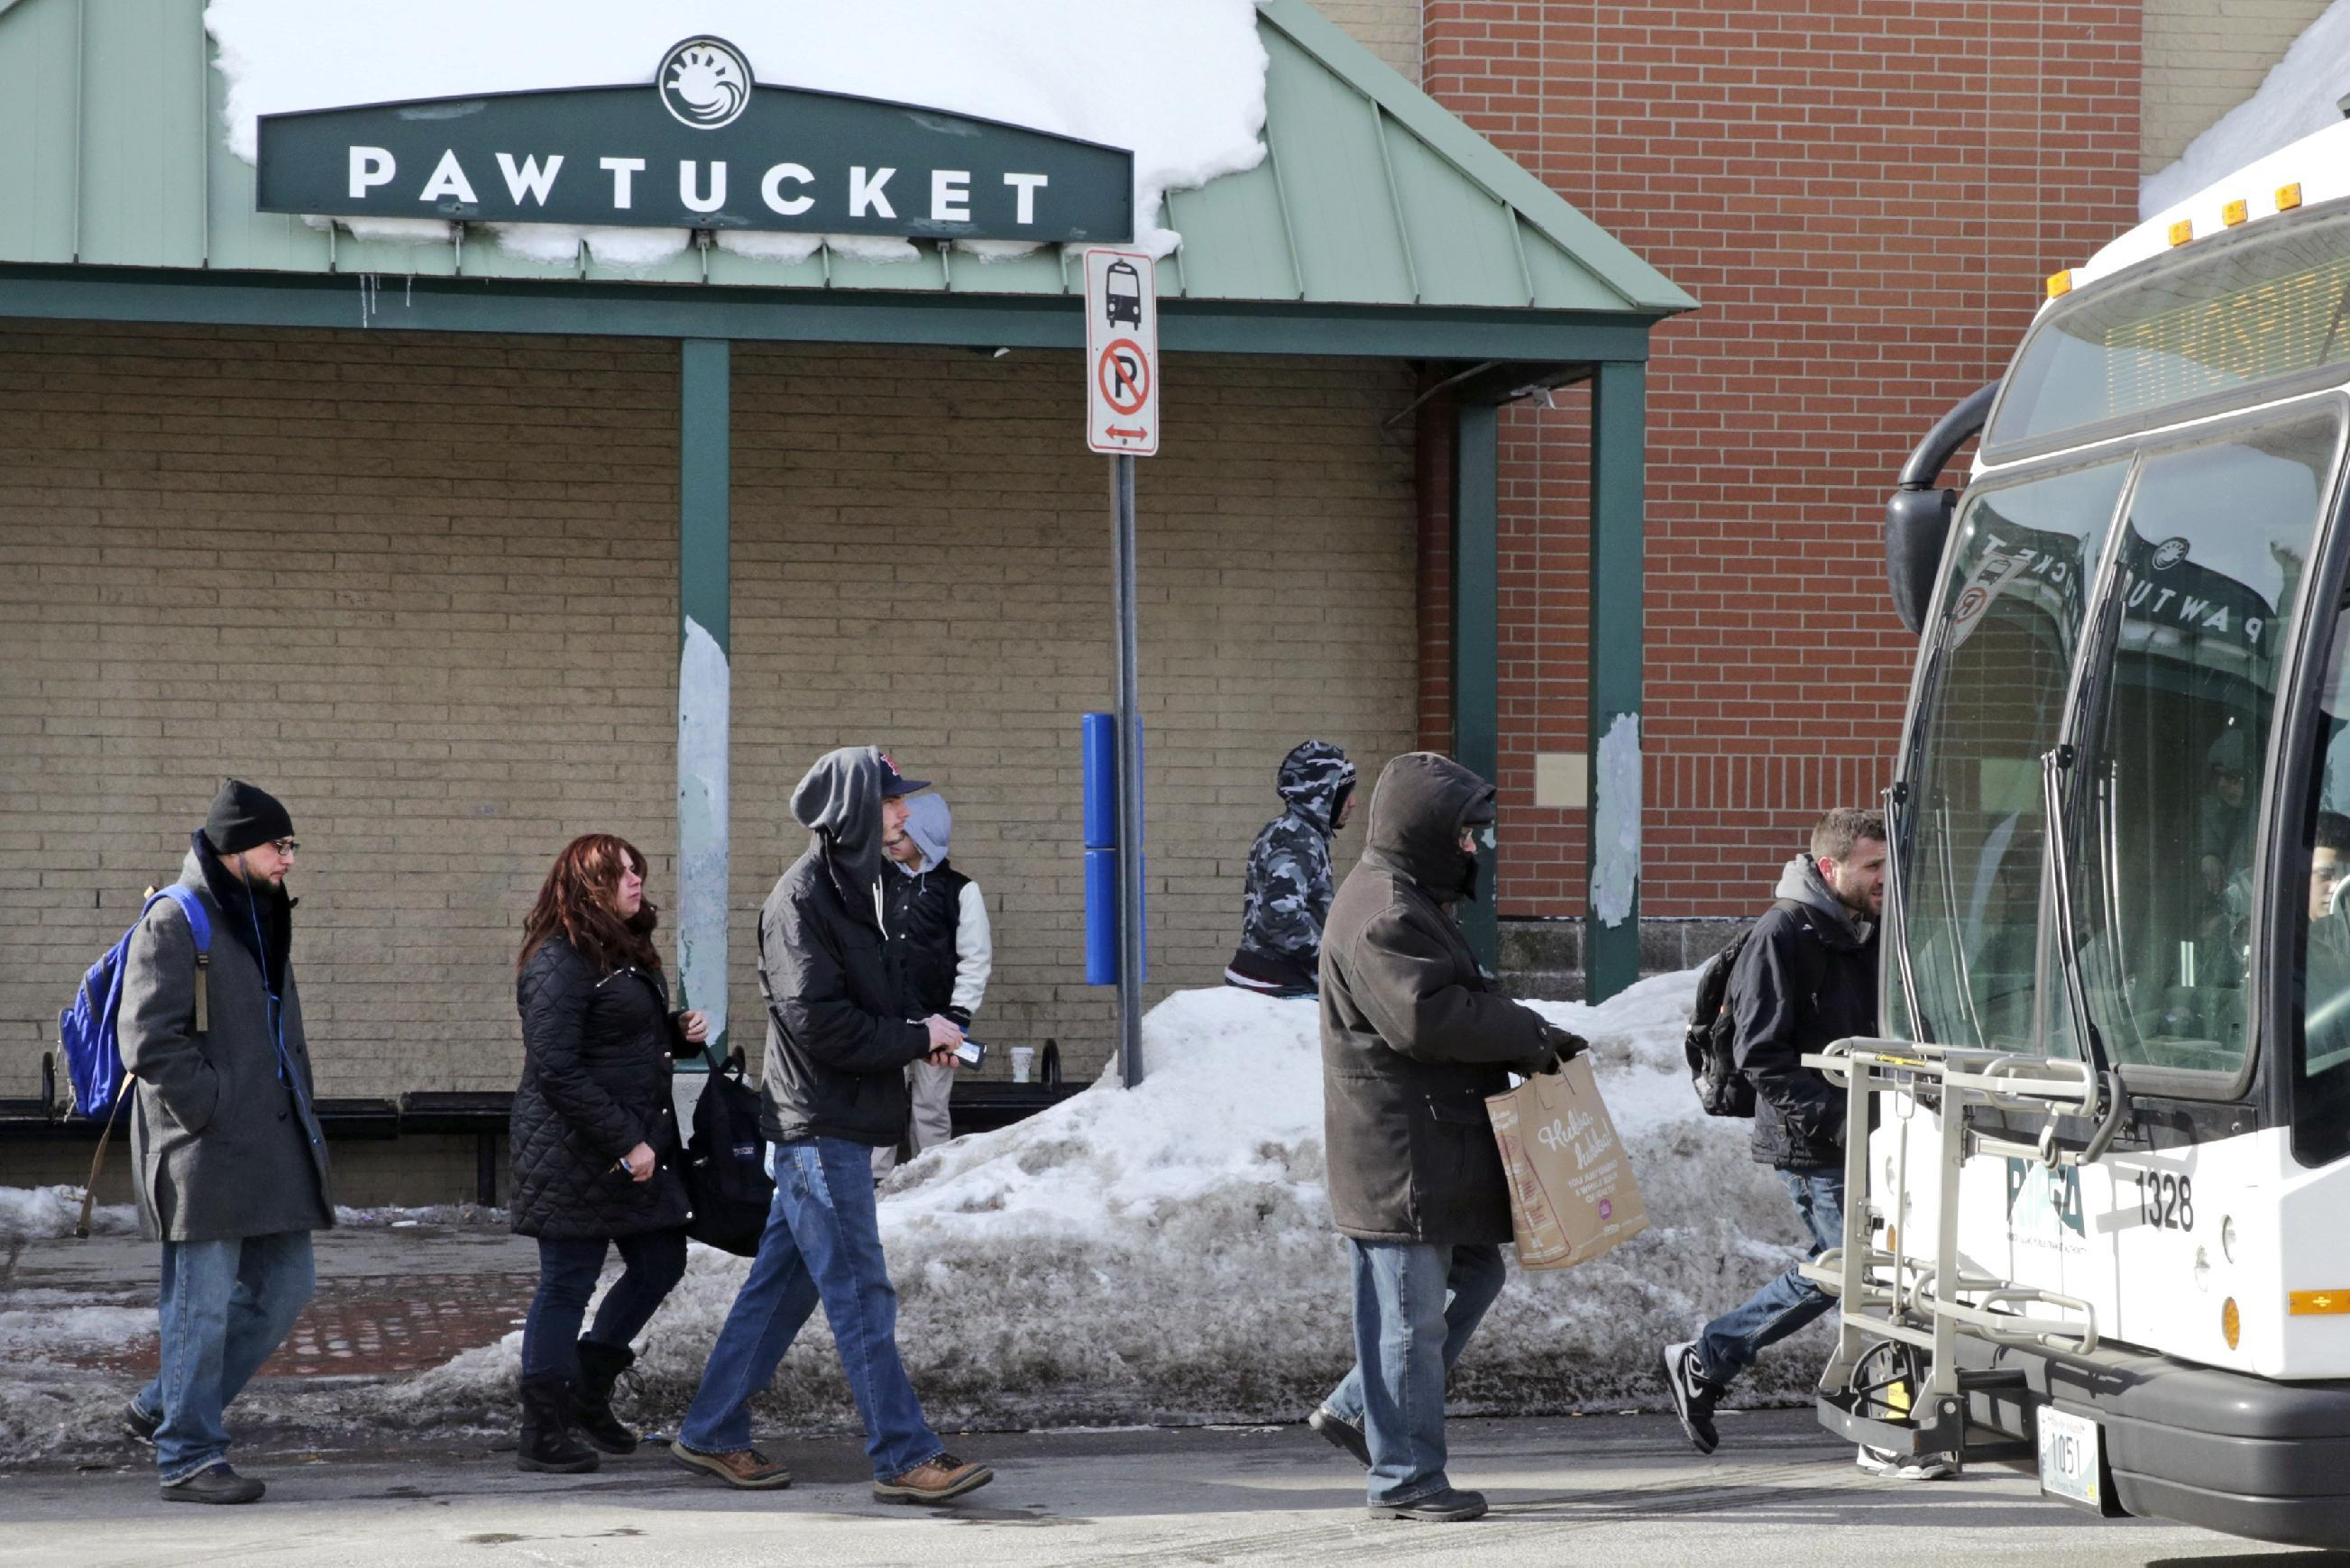 Loss of PawSox will devastate city, officials say